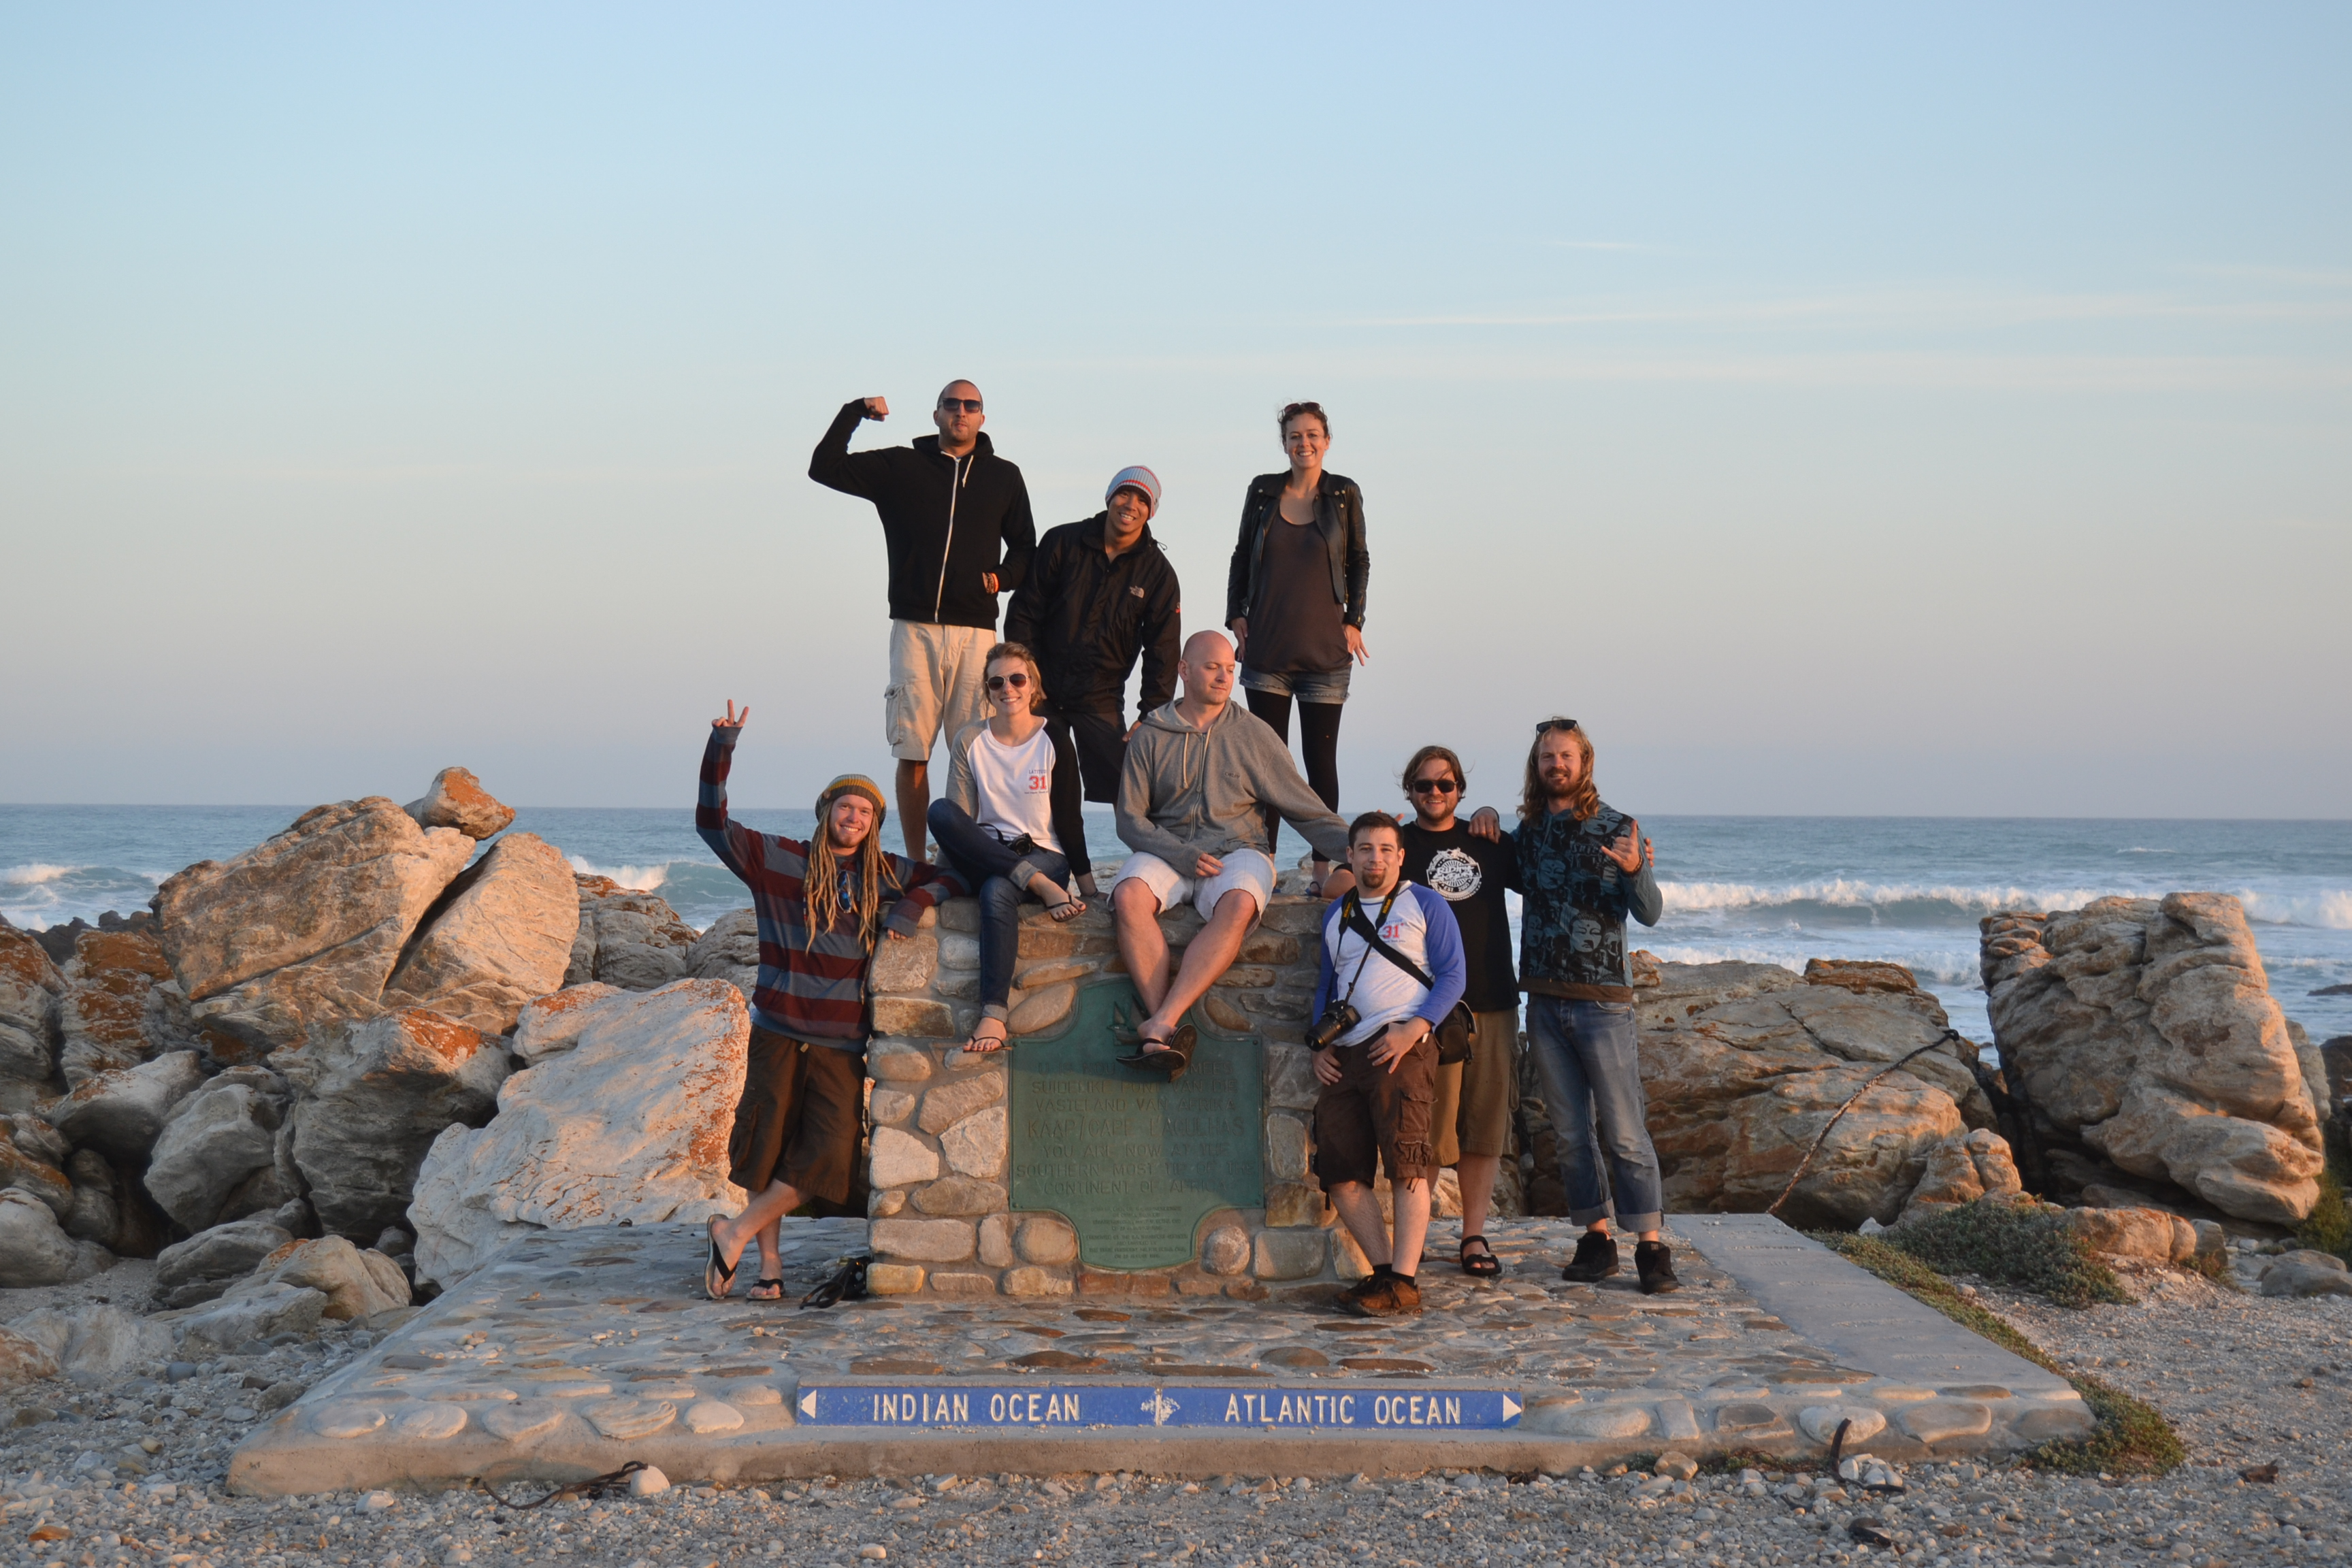 Group Travel South Africa